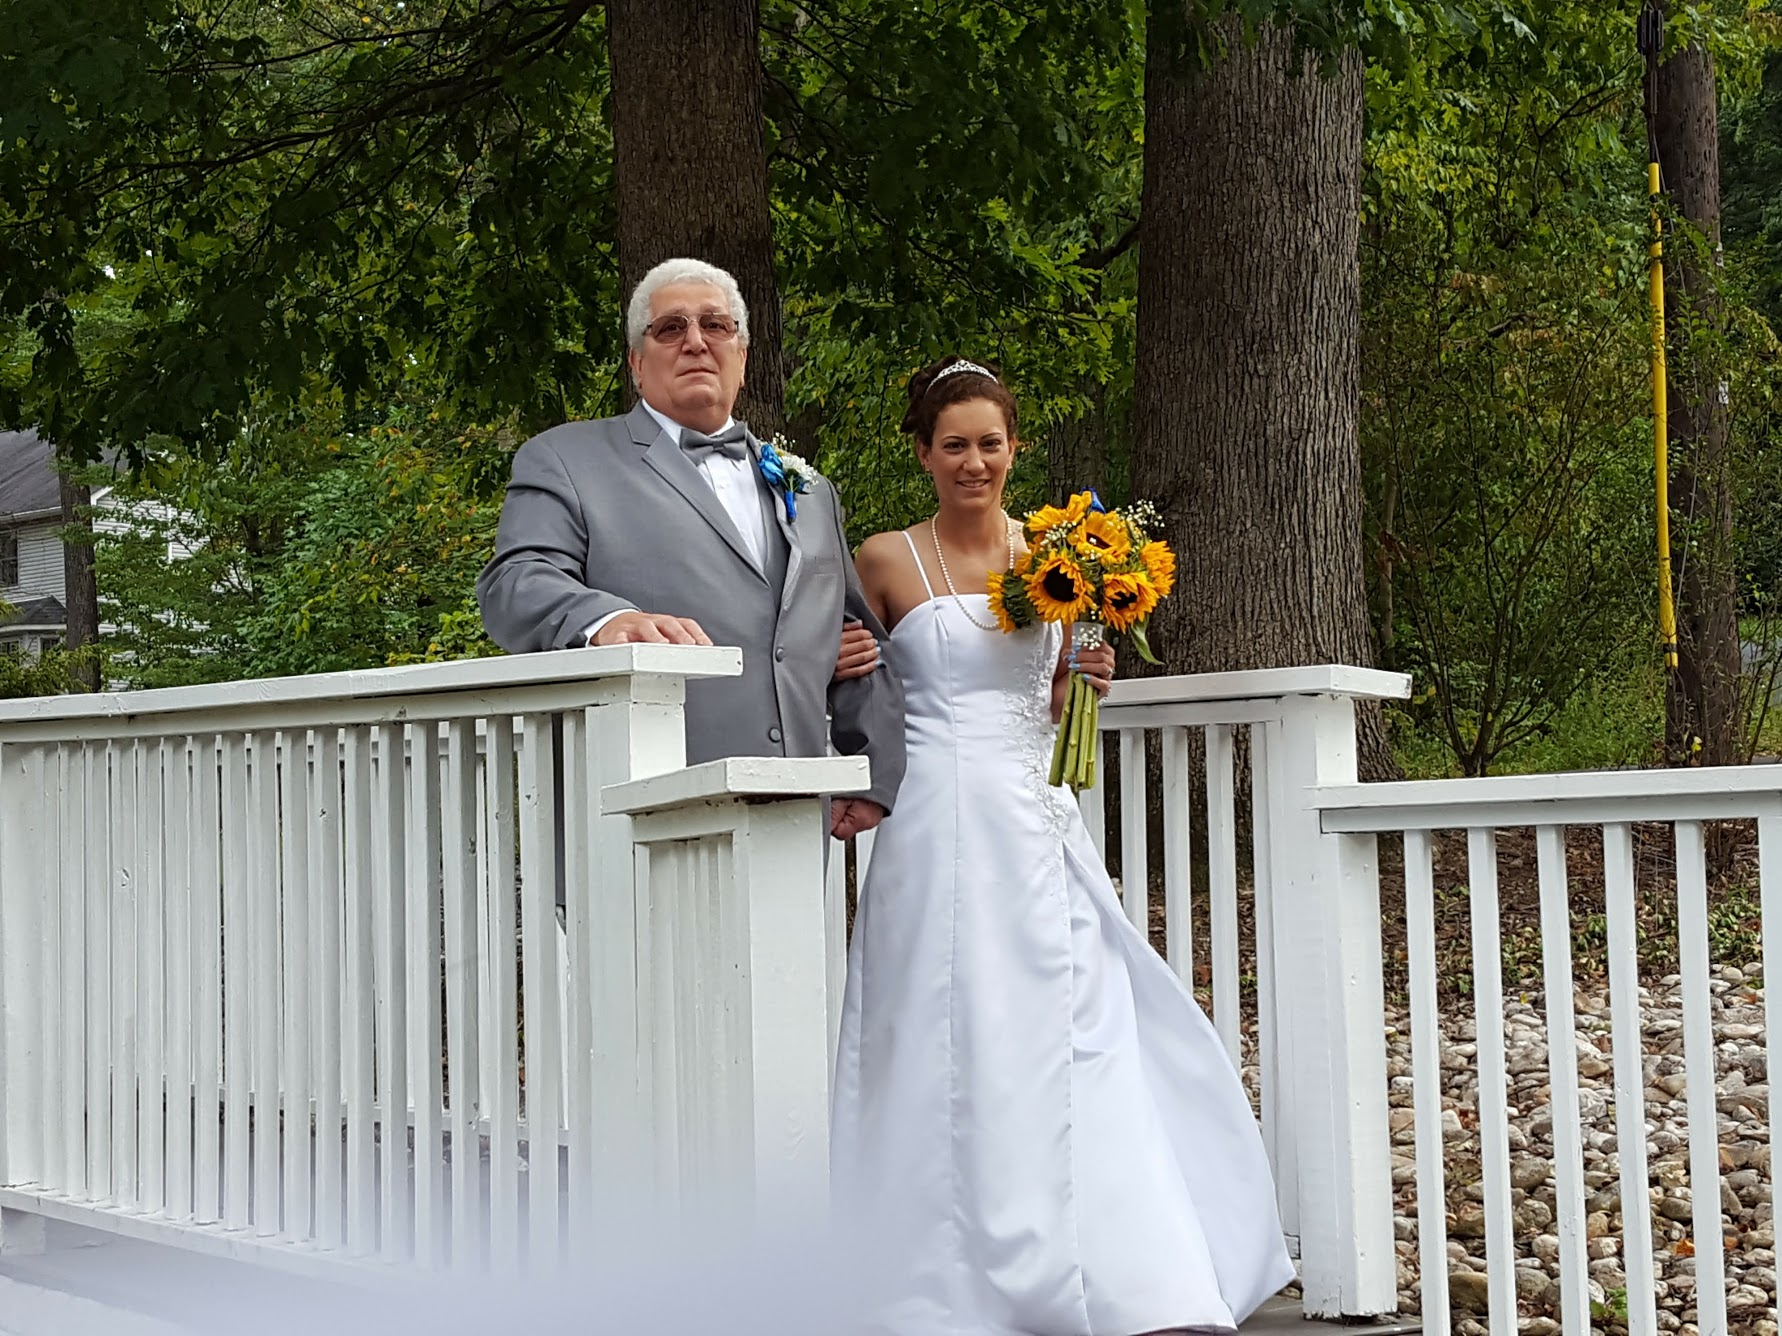 Father and daughter during wedding ceremony